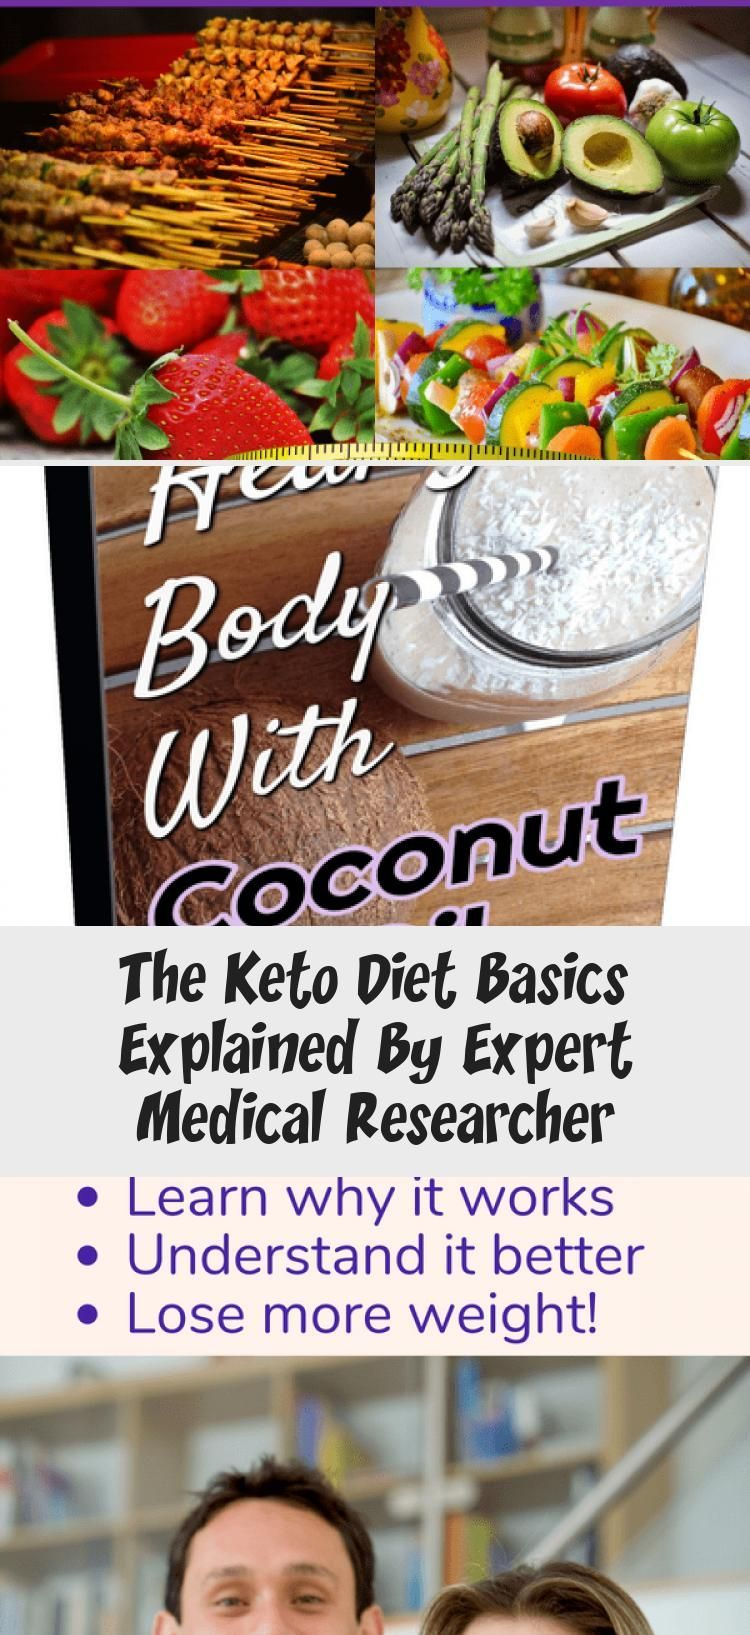 The Keto Diet Basics Explained By Expert Medical Researcher - health and diet fitness        The ket...